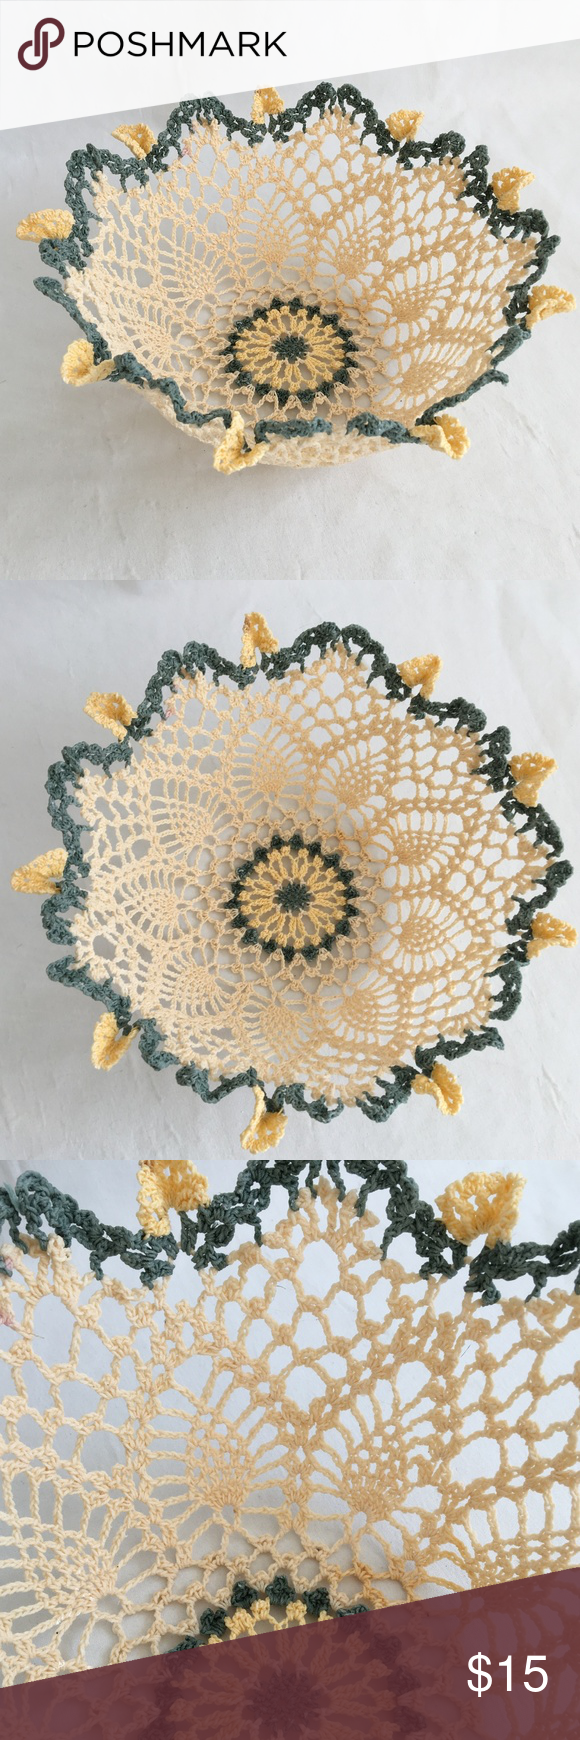 Large Crochet Bowl Home Decor Large crochet bowl measures 4 1/2 high and 11 in diameter made out of cotton thread.  Would look amazing in a home or apartment.  It does have one discolored spot from storage but is a new handmade item. Accents Baskets & Bins #crochetbowl